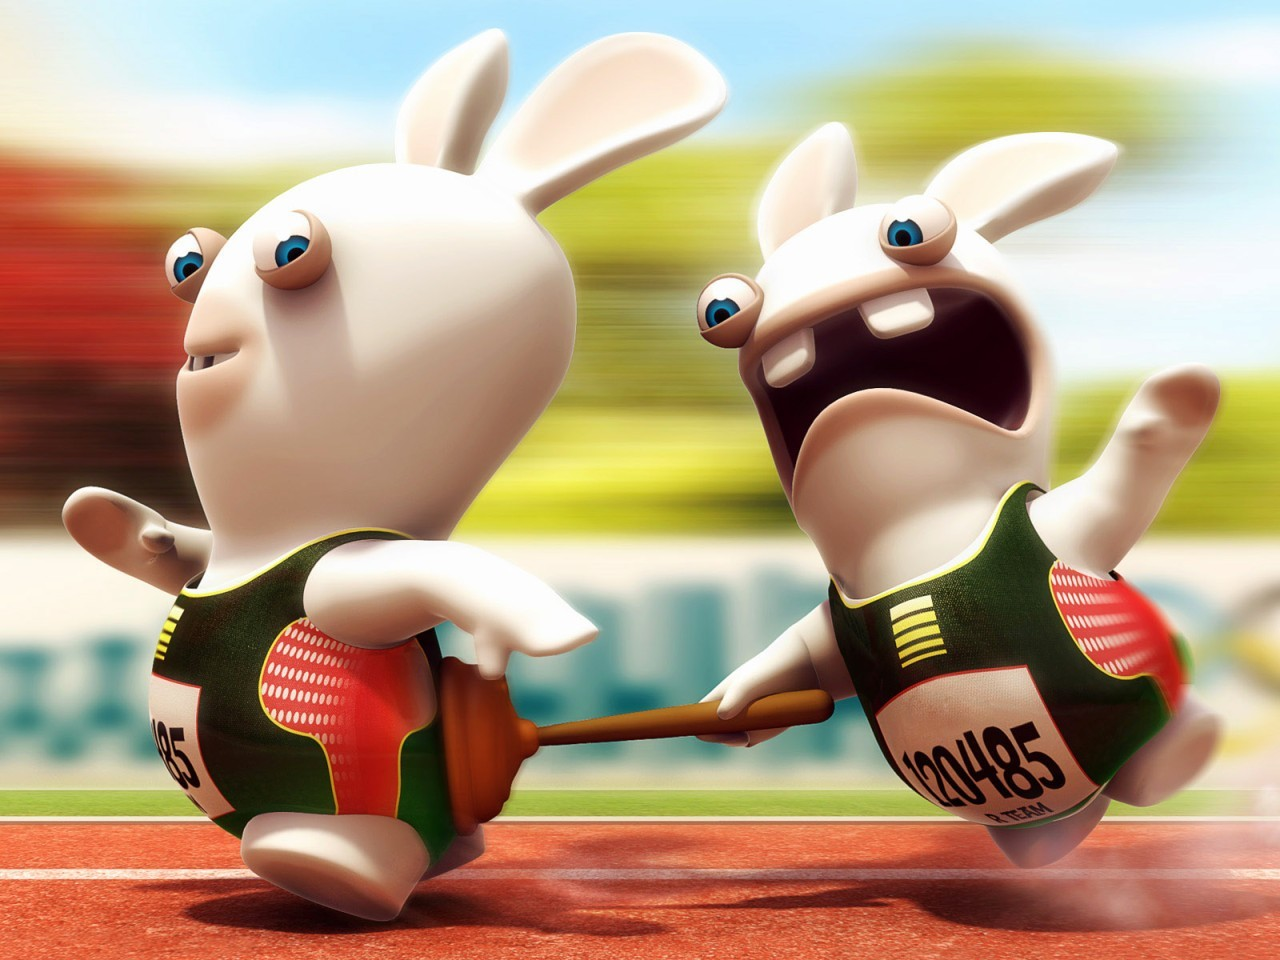 rayman Racer Raving Rabbids HD Wallpaper